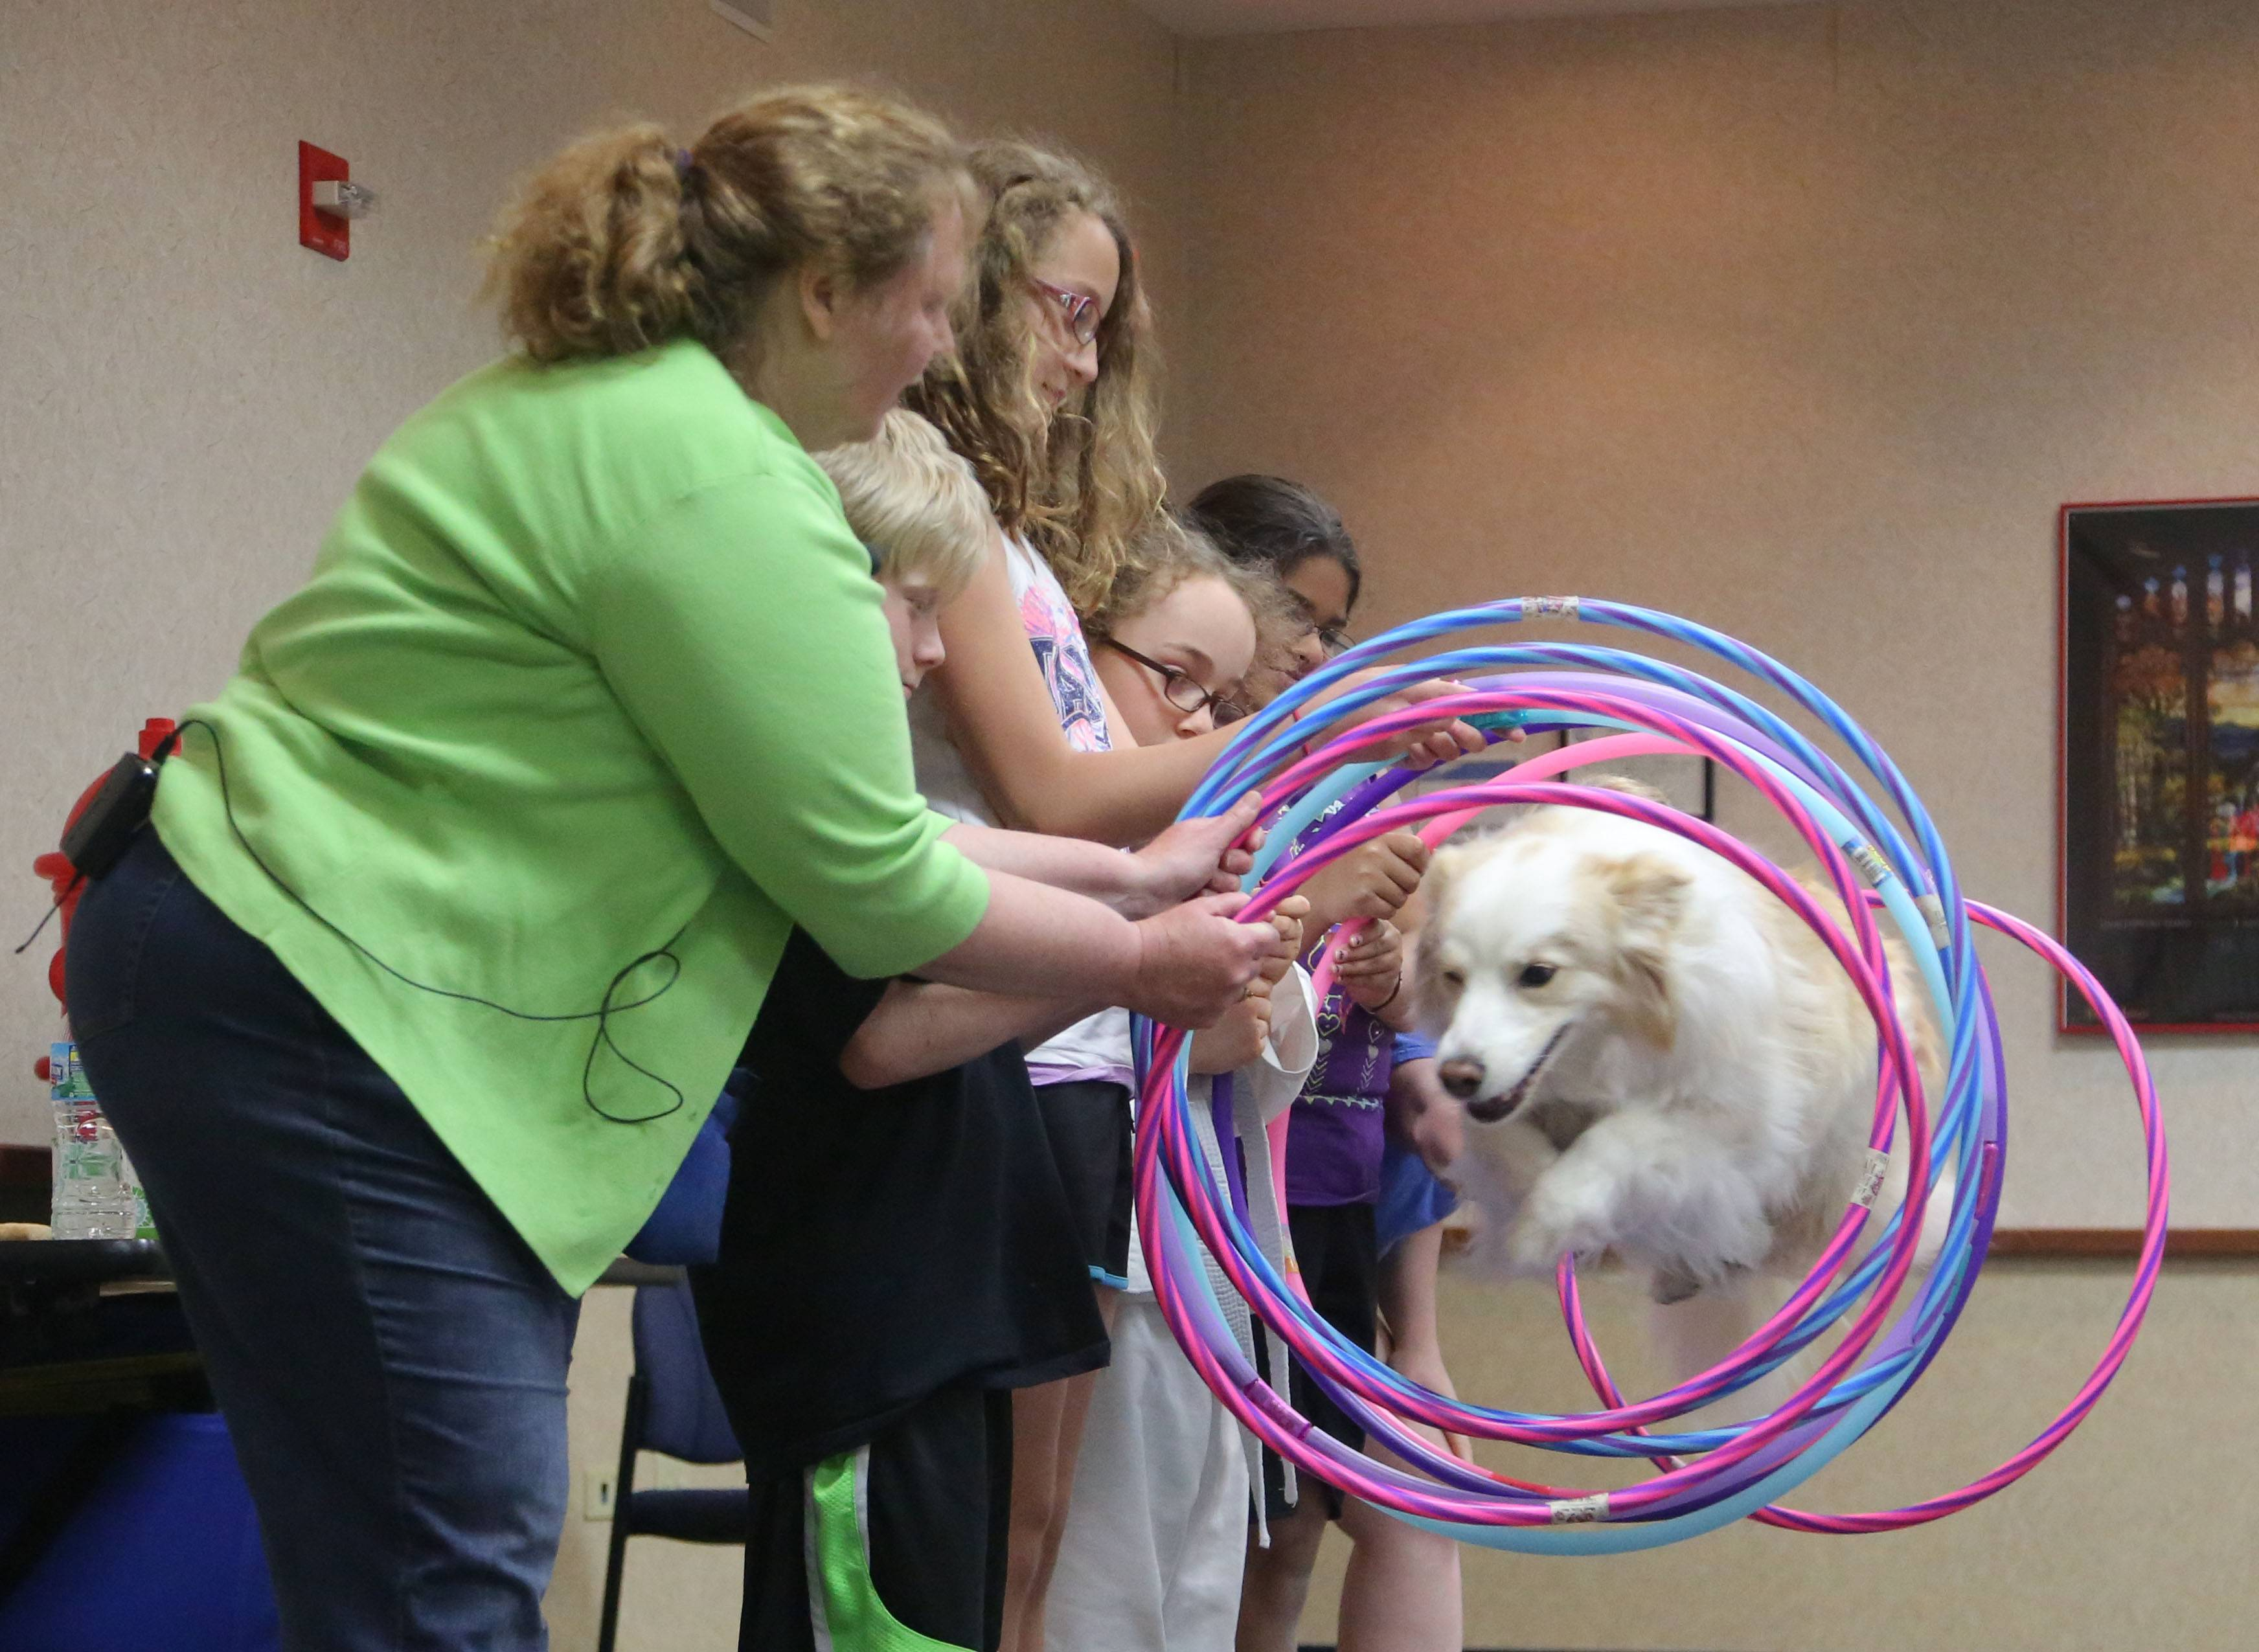 Cedar, a border collie, jumps through nine hoops as Robin's Dog Stars perform for kids during a program called Best in Show Monday at Fremont Public Library in Mundelein.